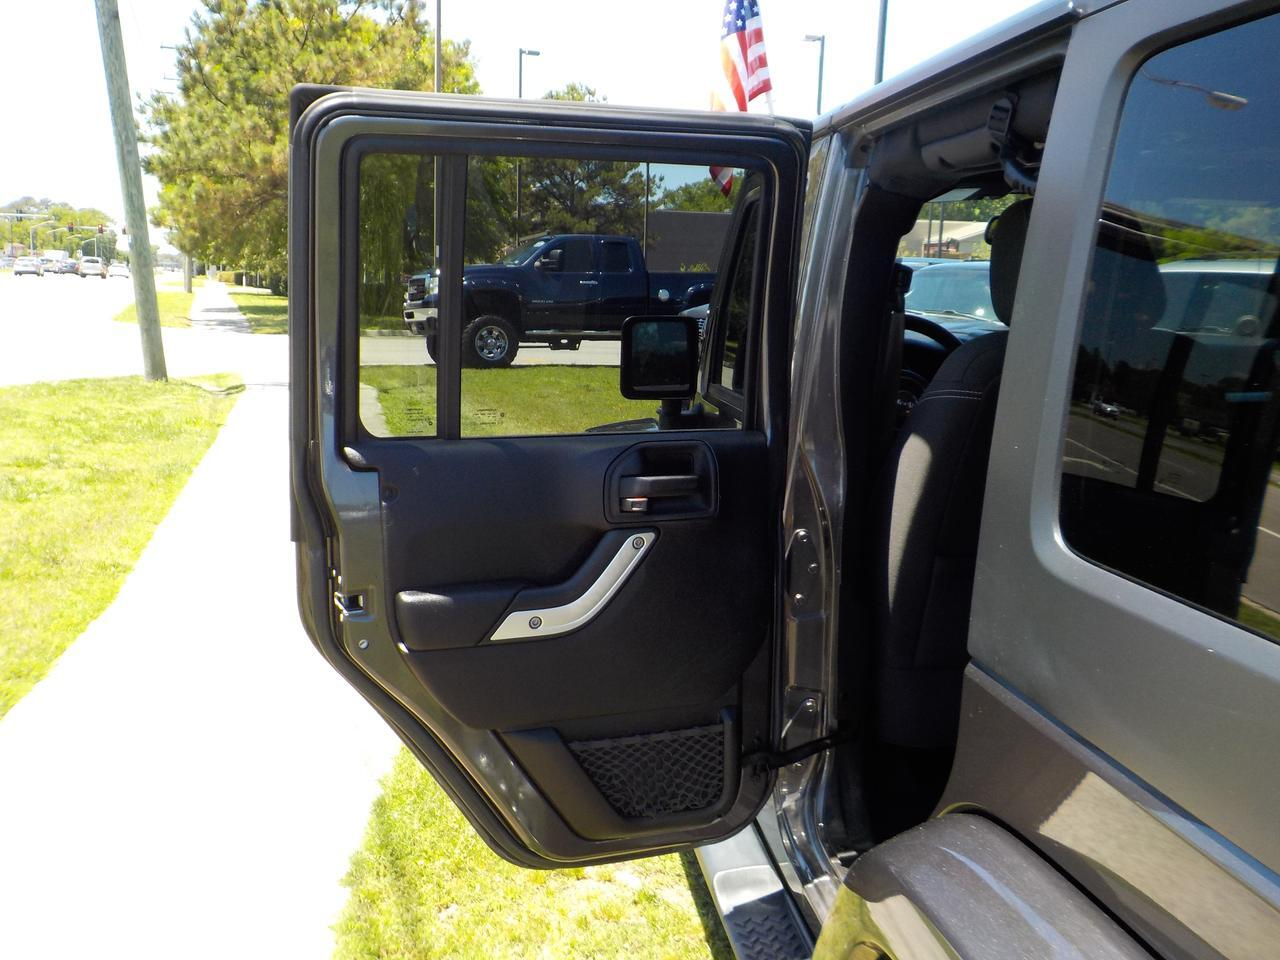 2014 JEEP WRANGLER SAHARA UNLIMITED 4X4, RUNNING BOARDS, TOW, KEYLESS ENTRY, AUXILIARY PORT, CRUISE CONTROL! Virginia Beach VA